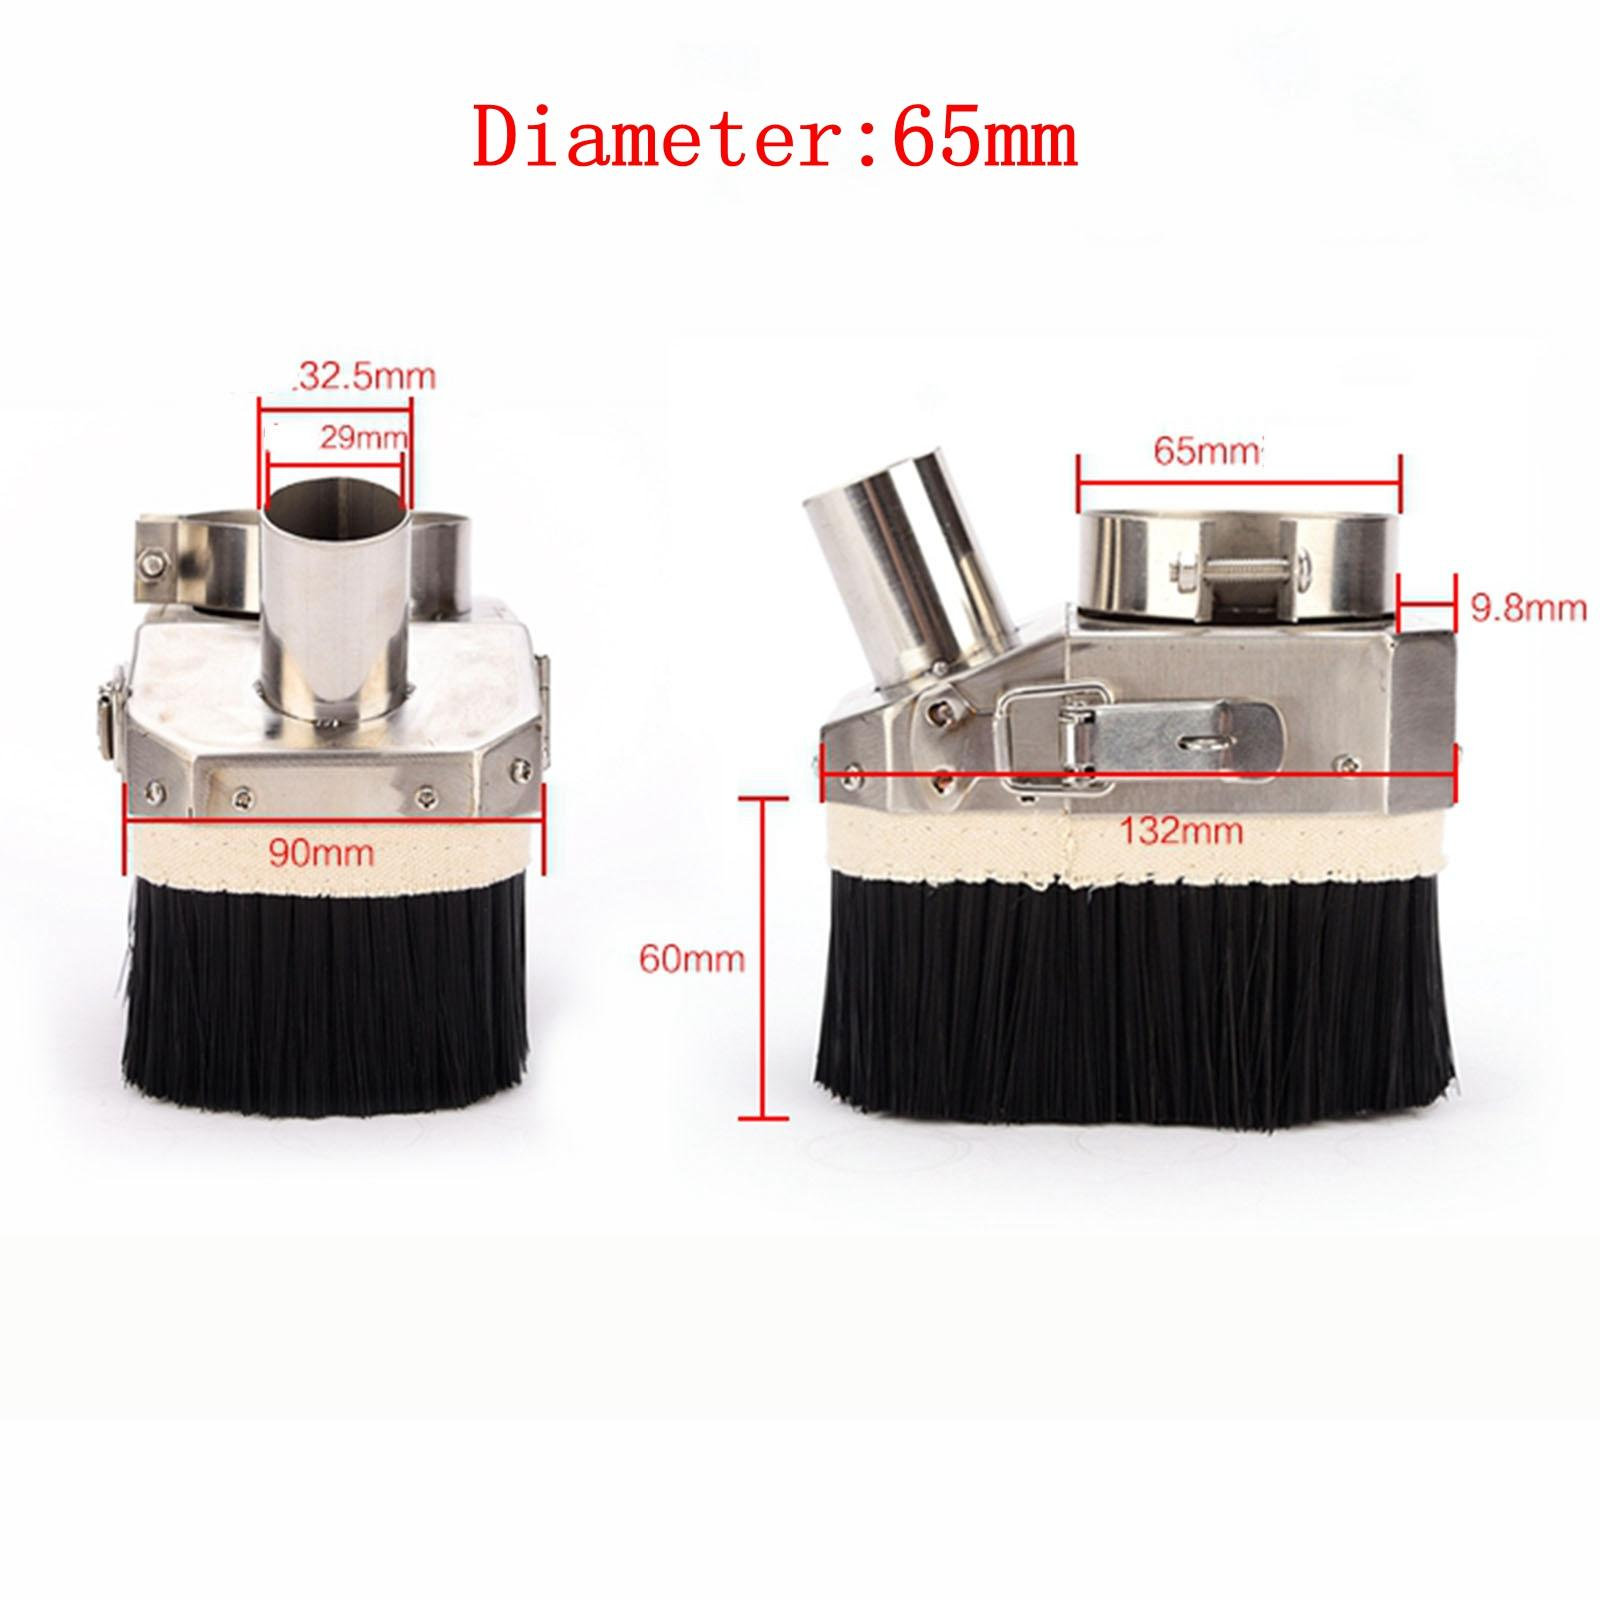 65mm Diameter Stainless Steel Spindle Dust Cover CNC Engraving Woodworking Machine Open Door Type For 800W CNC Spindle